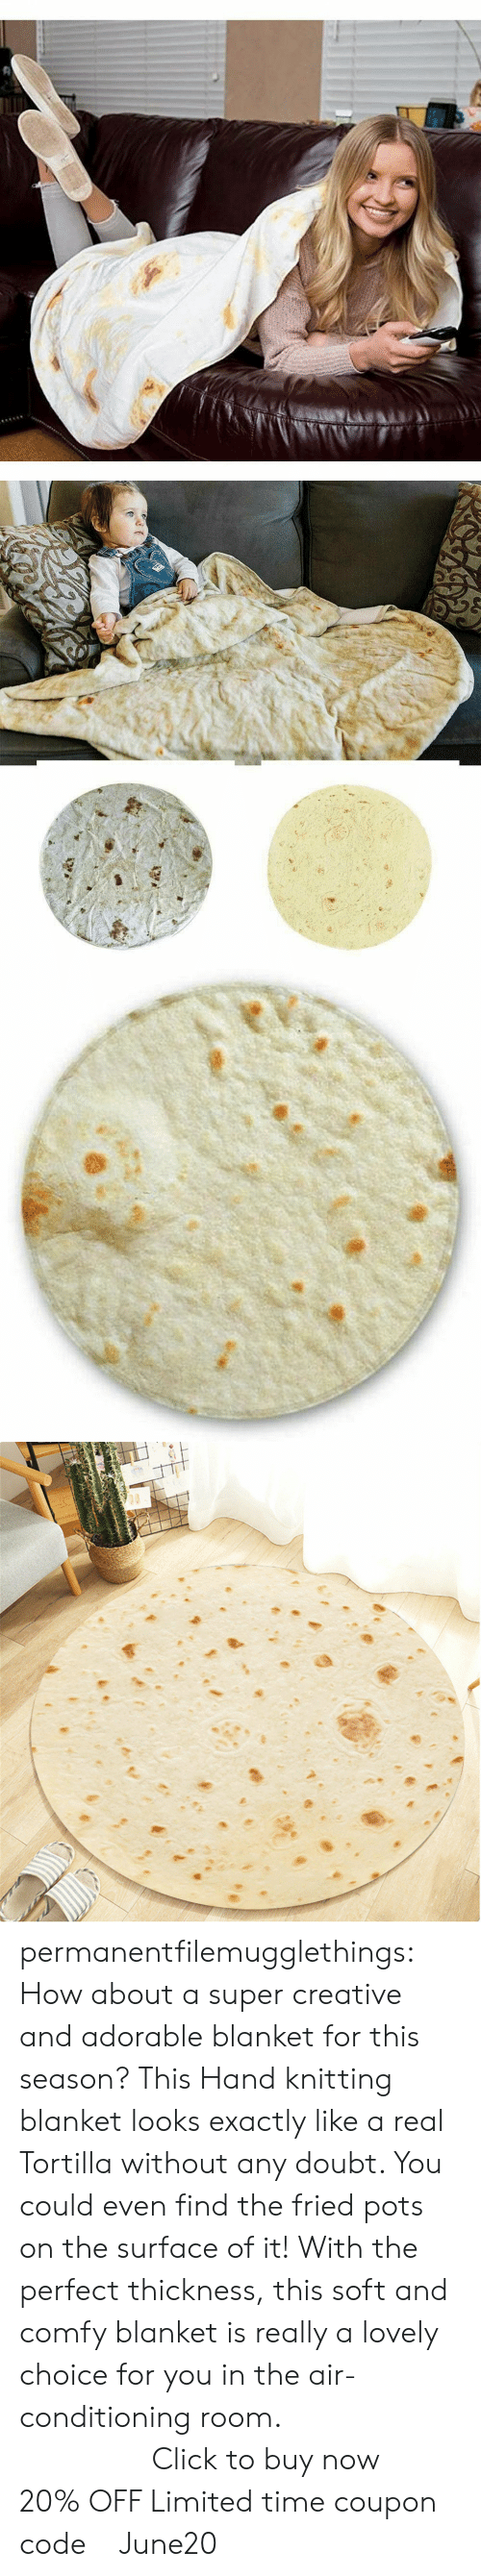 Click, Tumblr, and Blog: permanentfilemugglethings:  How about a super creative and adorable blanket for this season? This Hand knitting blanket looks exactly like a real Tortilla without any doubt. You could even find the fried pots on the surface of it! With the perfect thickness, this soft and comfy blanket is really a lovely choice for you in the air-conditioning room.                   Click to buy now !20% OFF Limited time coupon code : June20